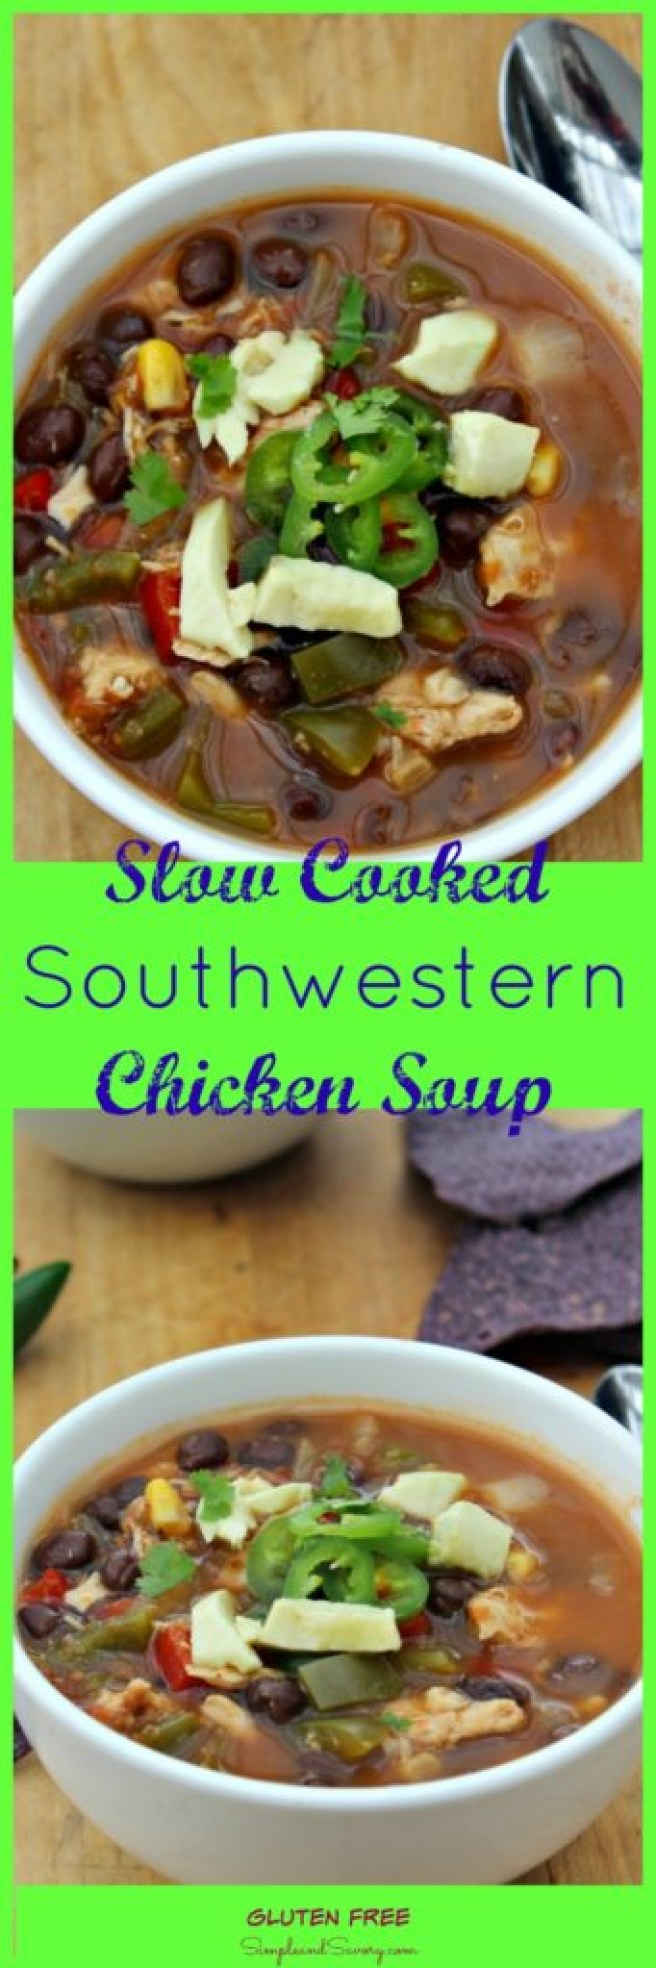 slow-cooked-southwestern-chicken-gluten-free-simple-and-savory-com